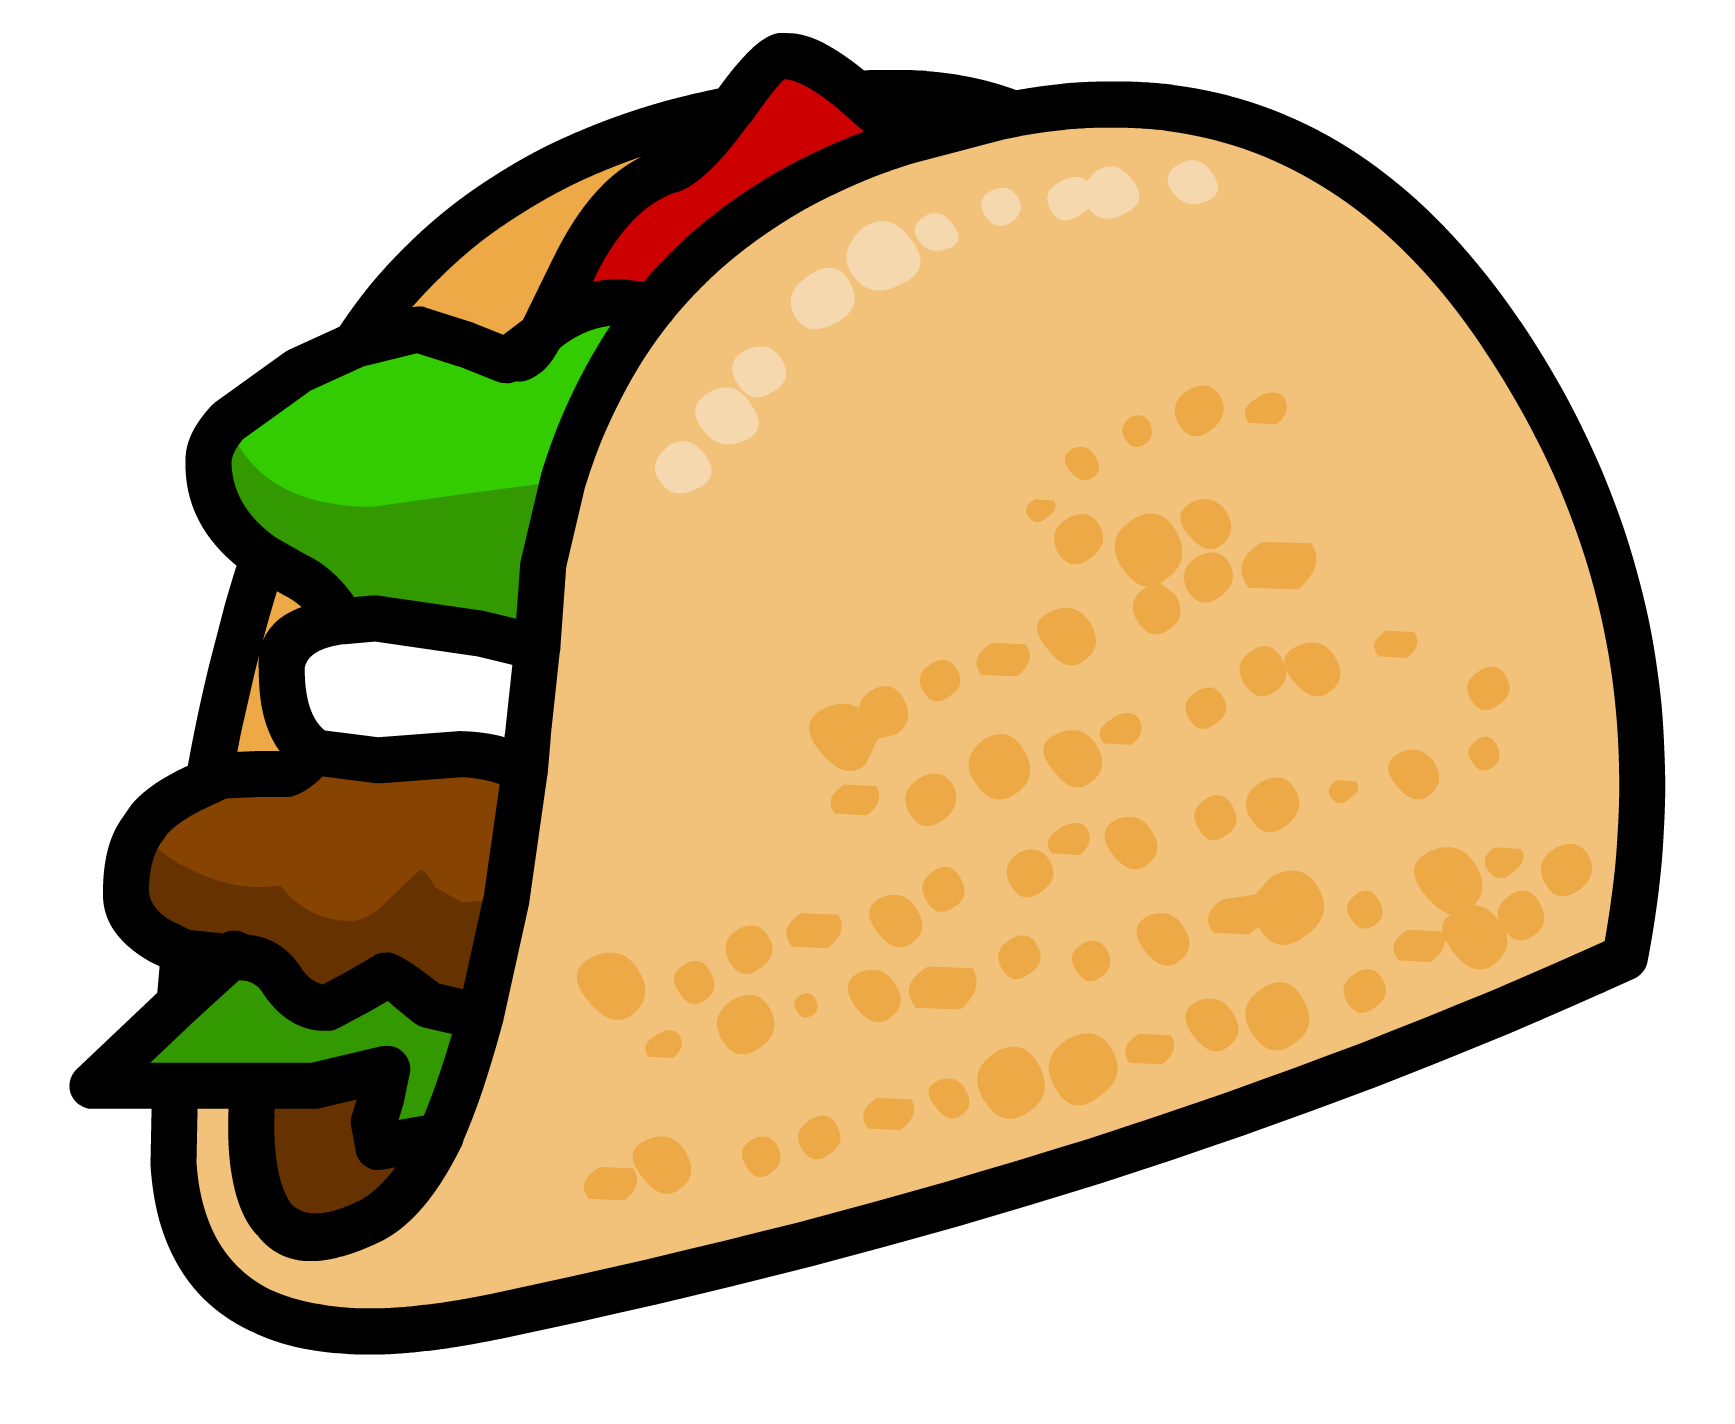 Fish taco clipart jpg freeuse stock 28+ Collection of Taco Drawing Png | High quality, free cliparts ... jpg freeuse stock